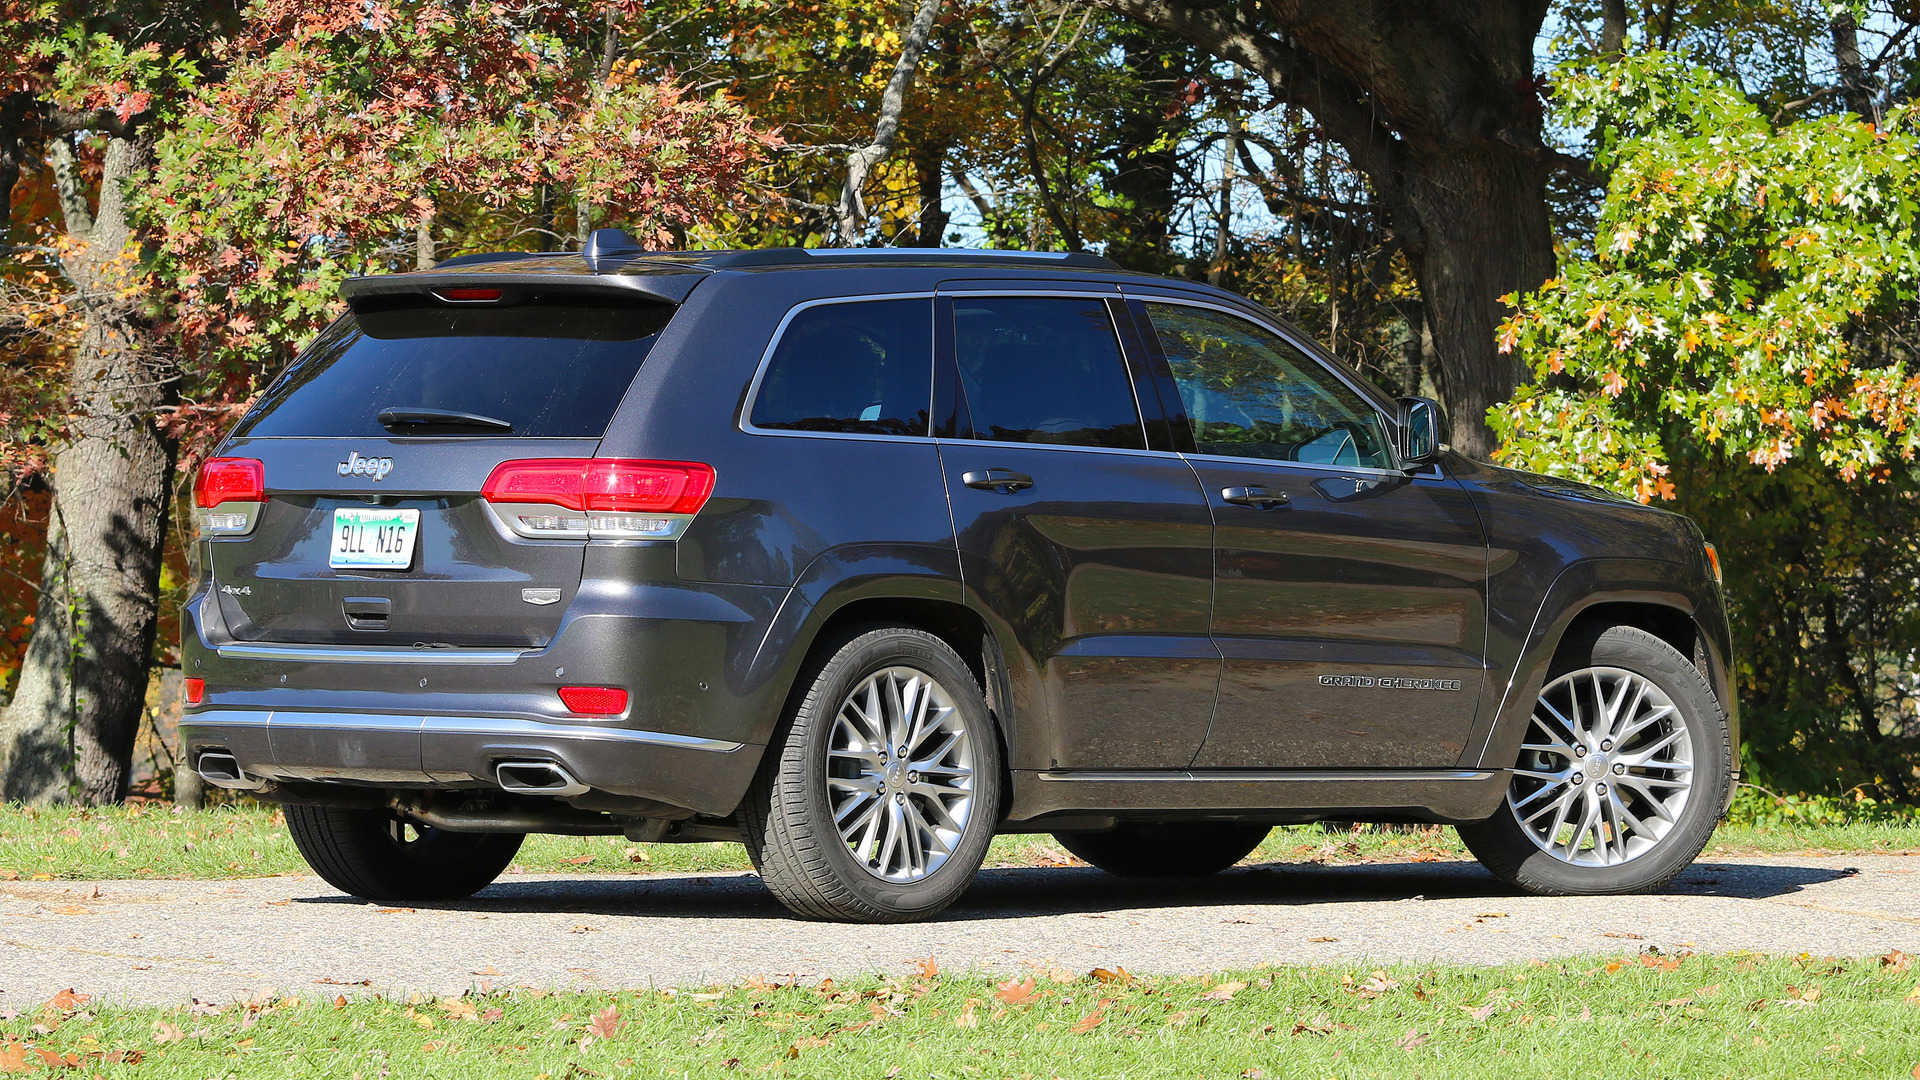 2017 Ford Explorer Mpg >> 2017 Jeep Grand Cherokee Review: All the SUV I really need